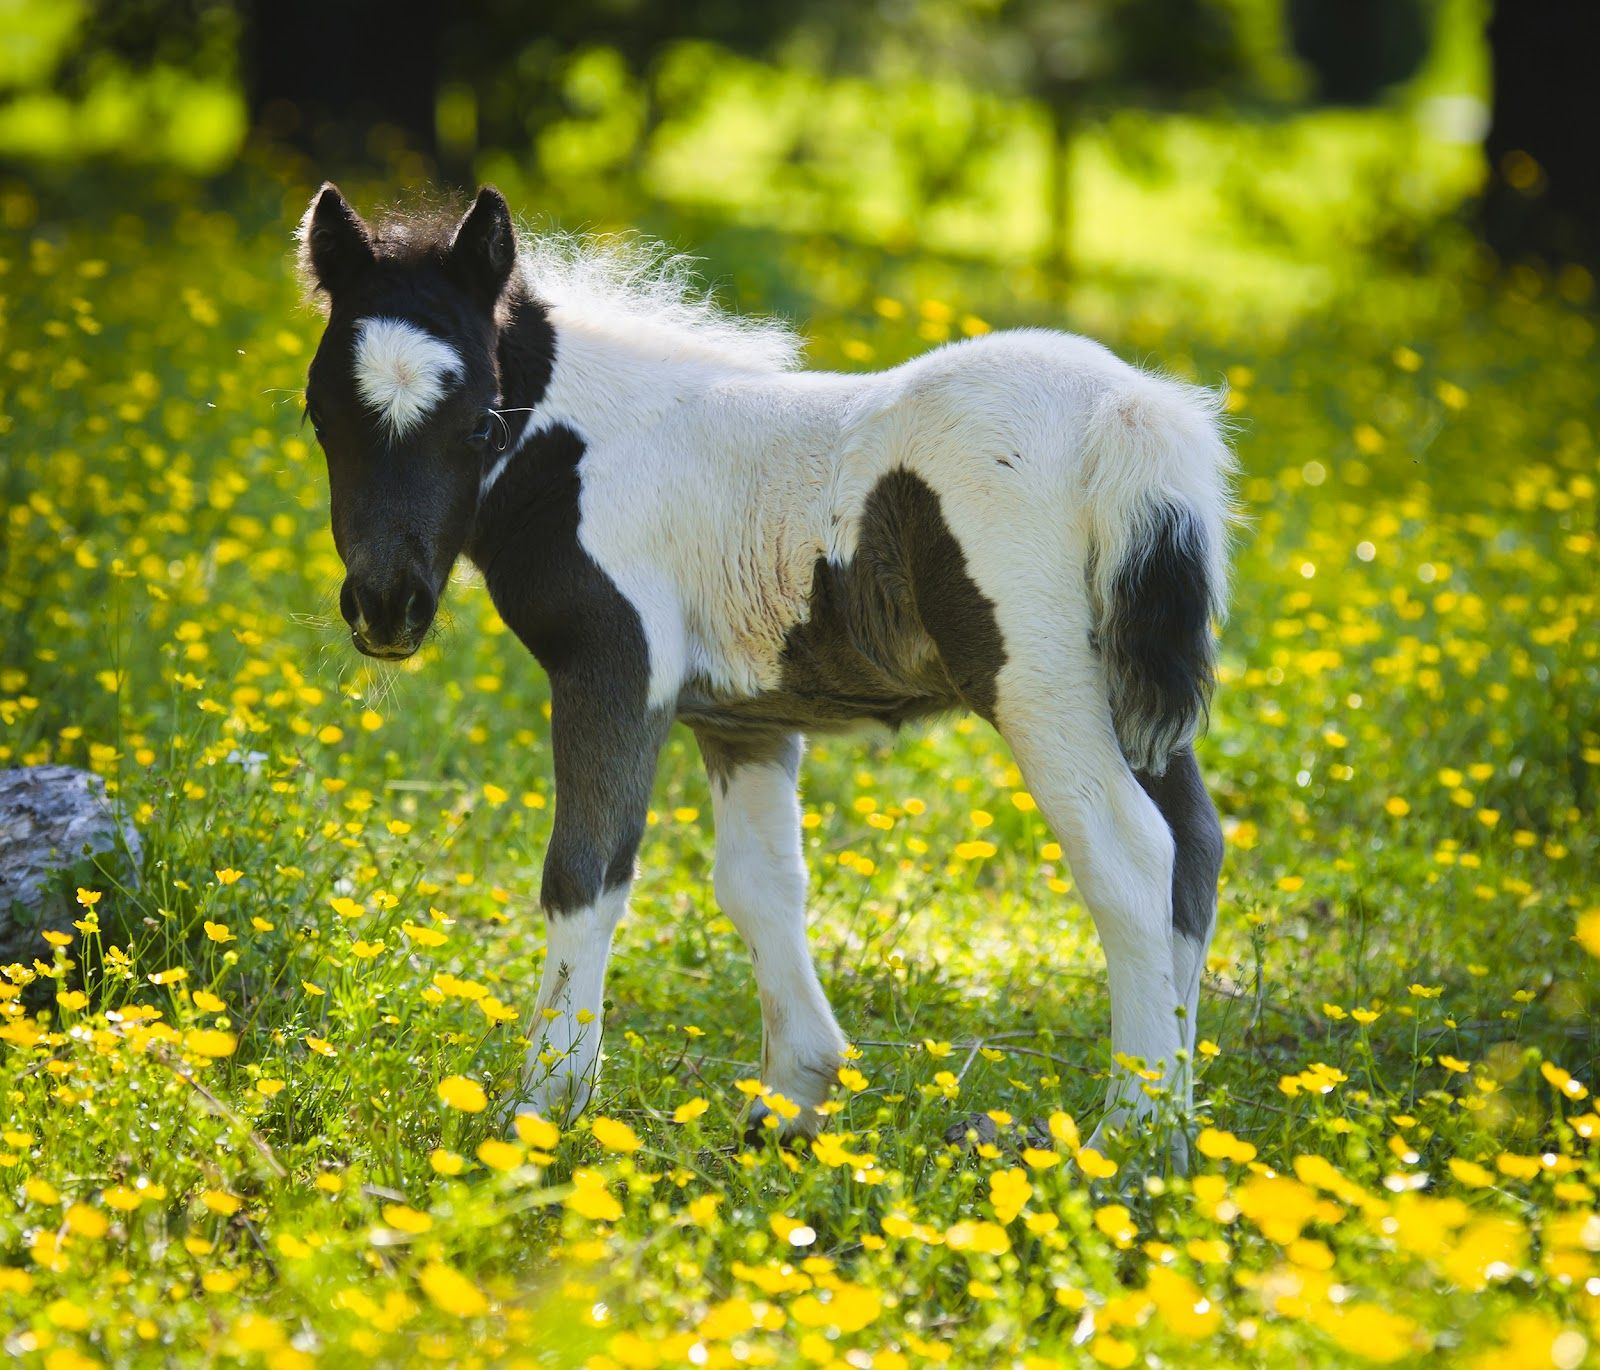 Desktopwallpaperu Miniature Horse Desktop Wallpapers Horses - Adorable miniature horses provide those in need with love and care